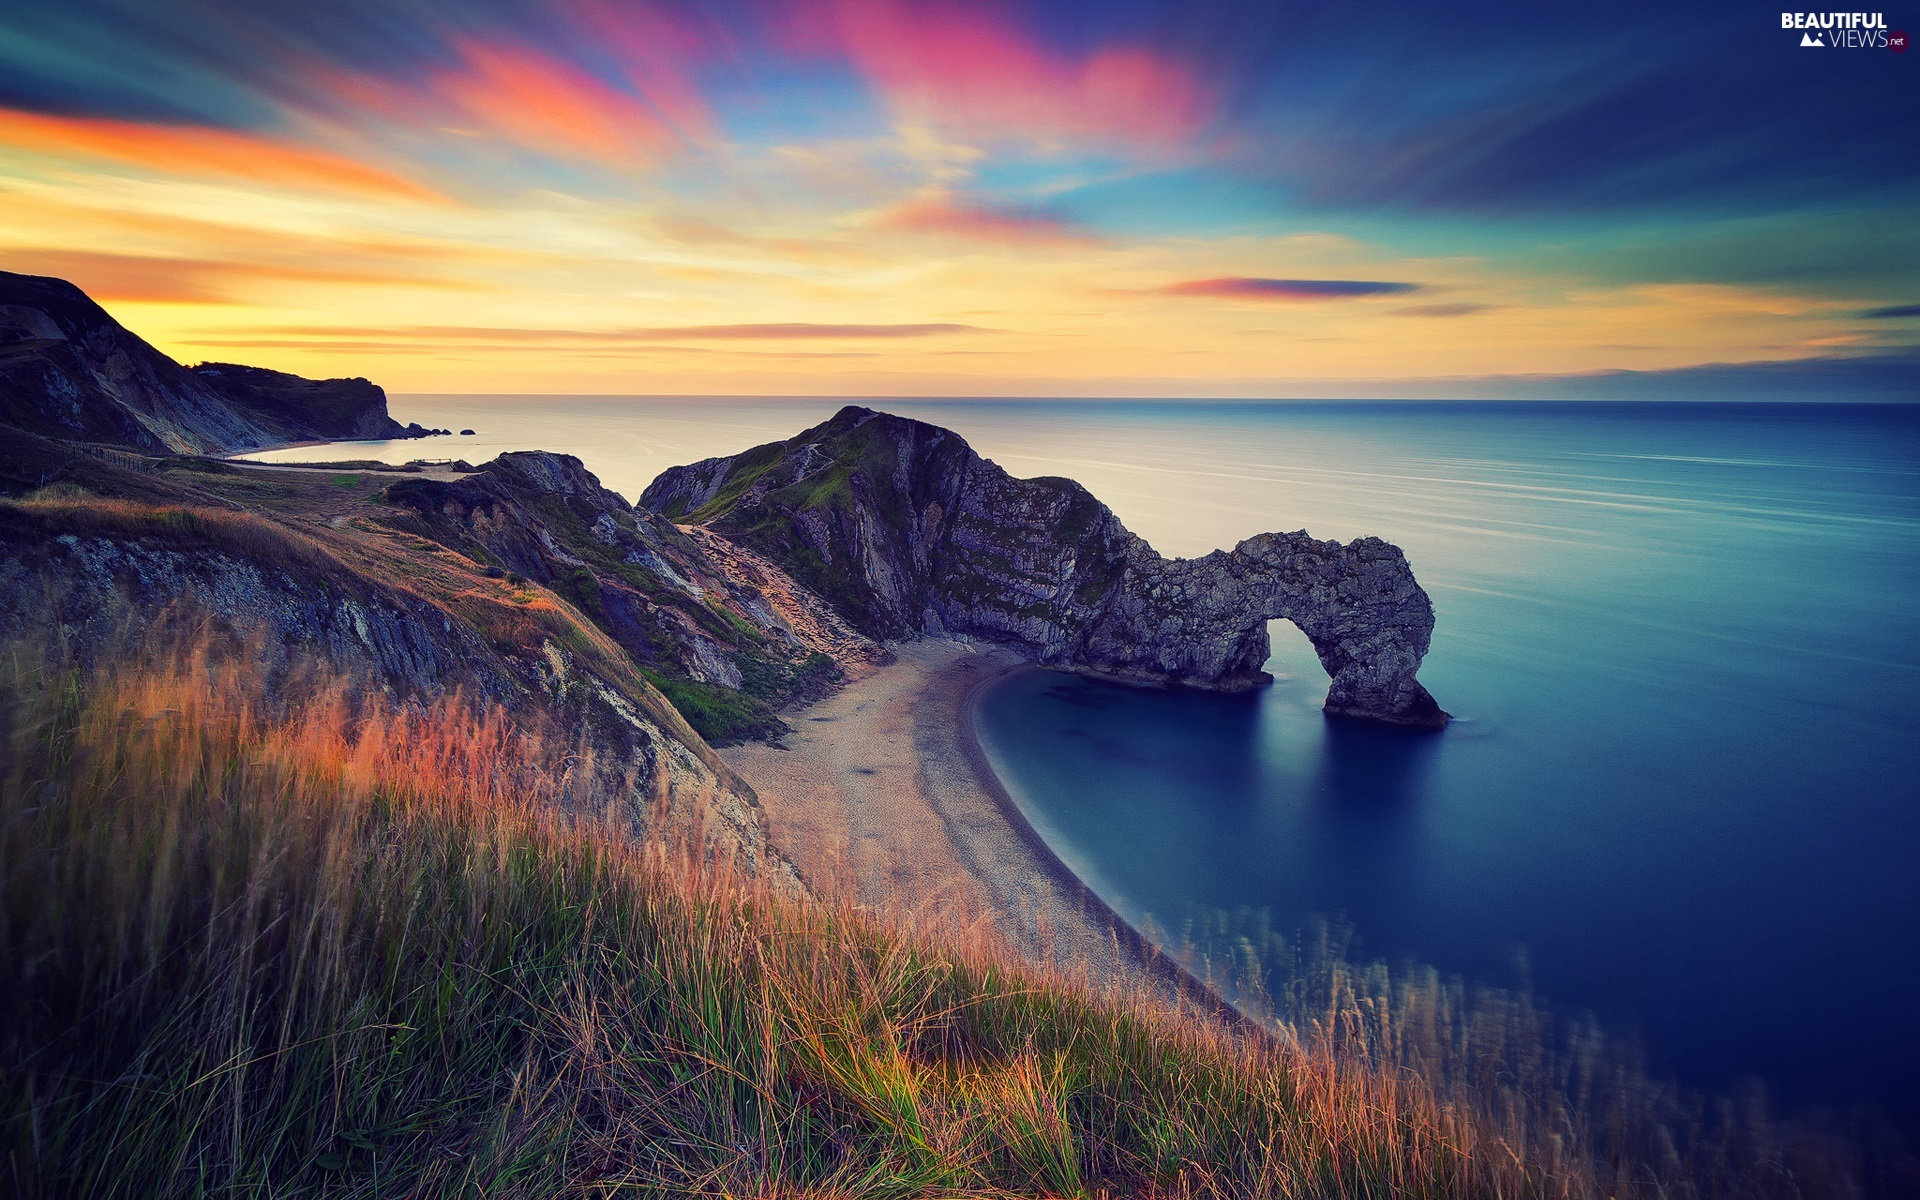 Limestone Durdle Door, sea, rocks, Jurassic Coast, England, Great Sunsets, Beaches